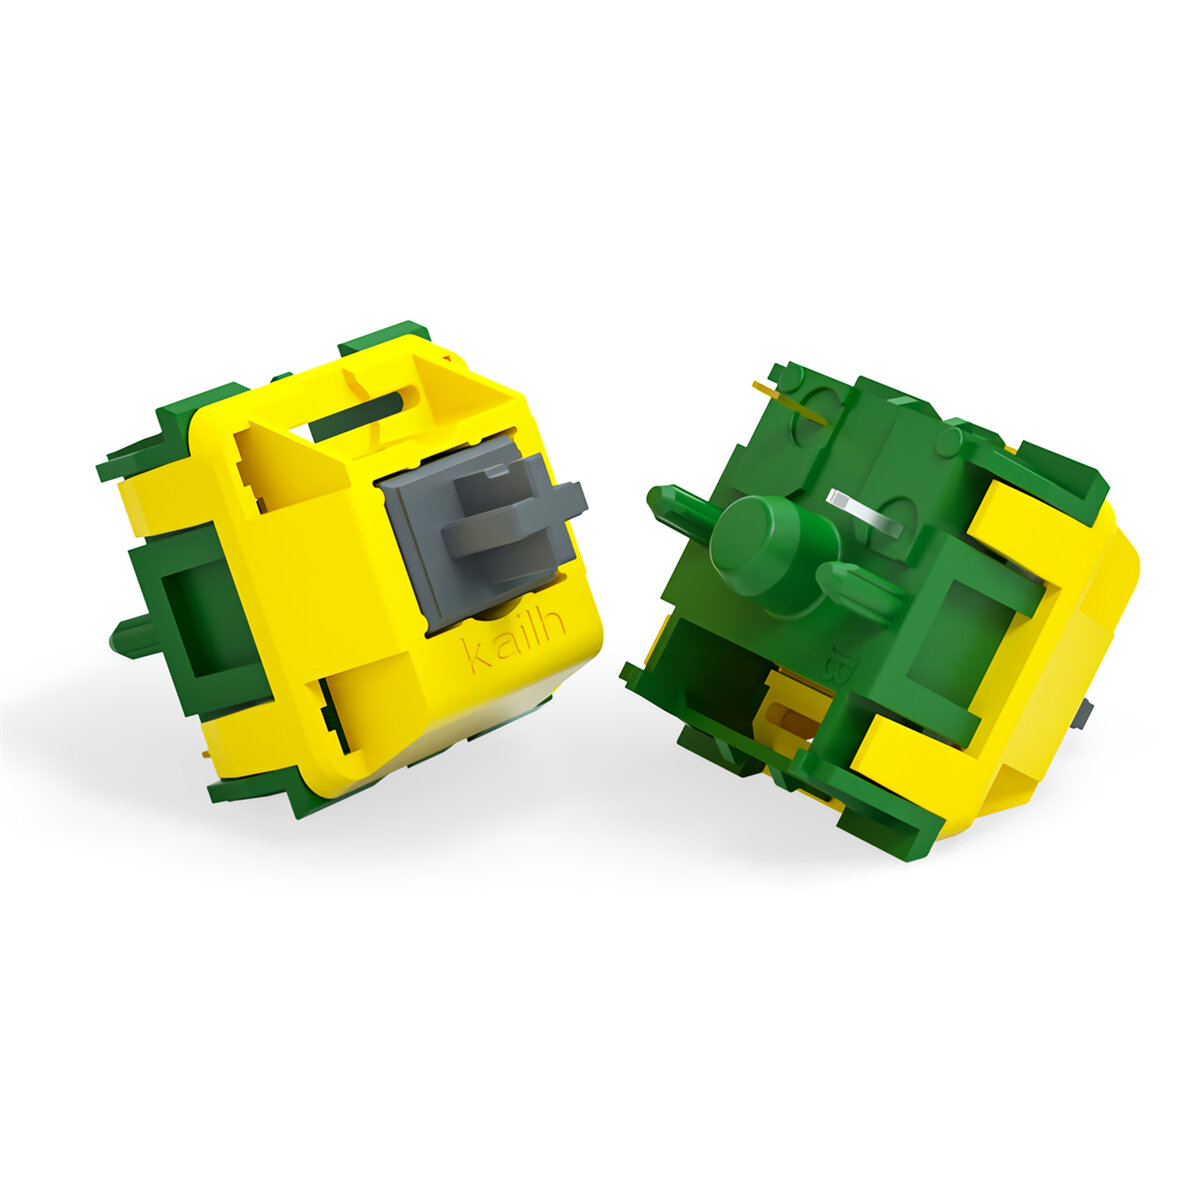 70Pcs/pack Kailh Canary Switch 5Pin Tactile Self-lubricating Mechanical Keyboard Switch for DIY Mechanical Gaming Keyboa